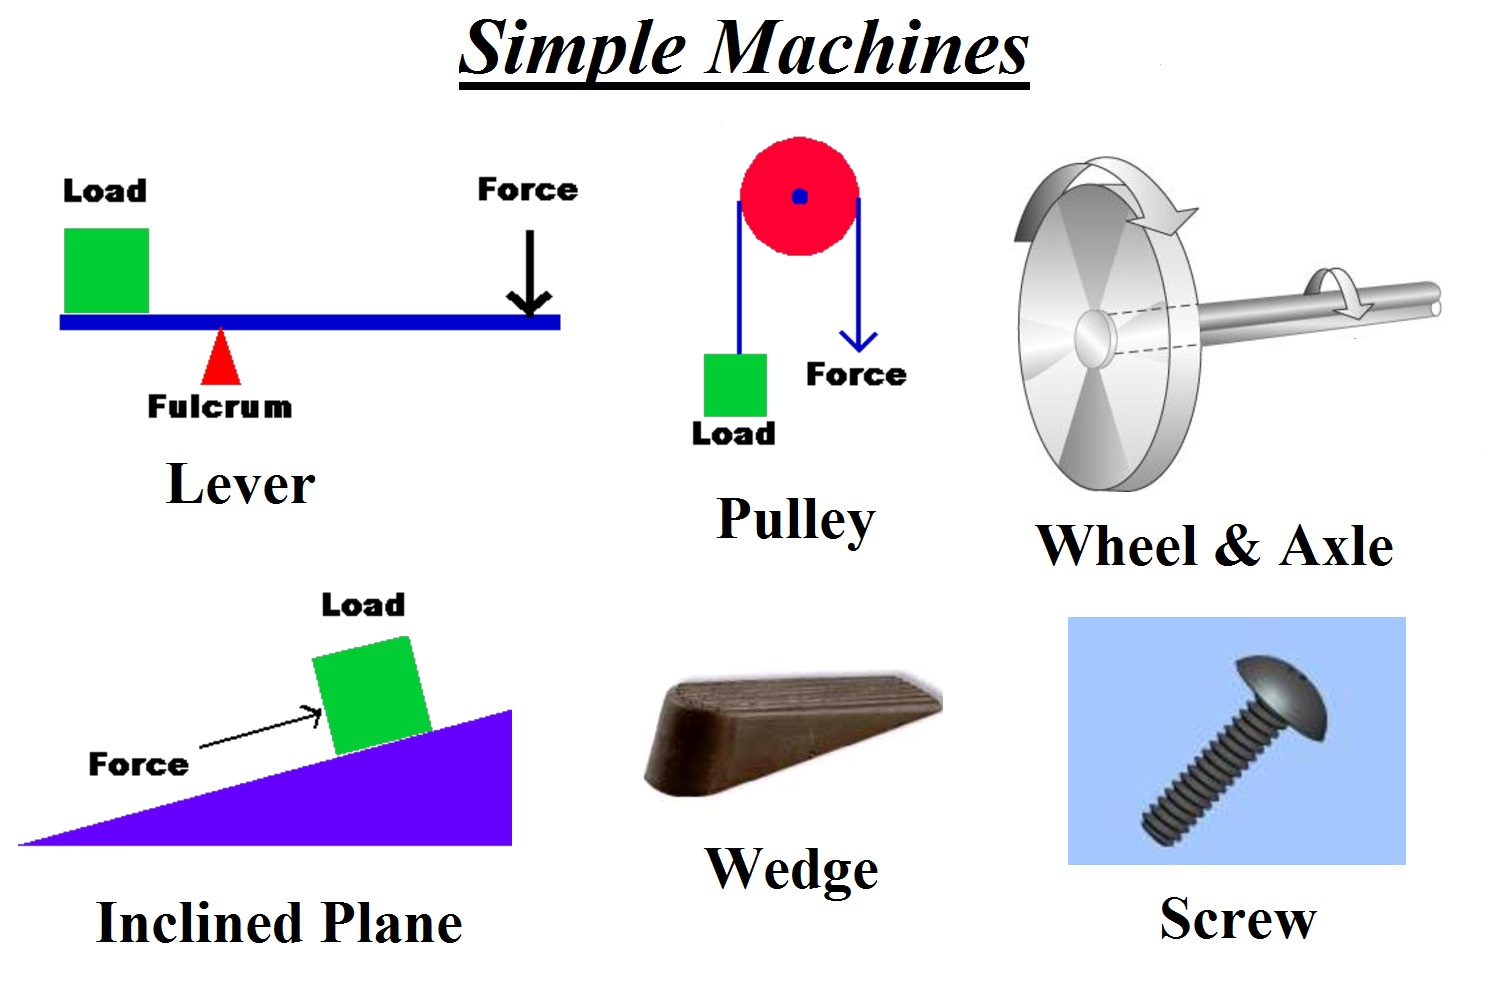 Http Automationprimer Com 2013 10 13 Simple Machines The Origins Of Automation